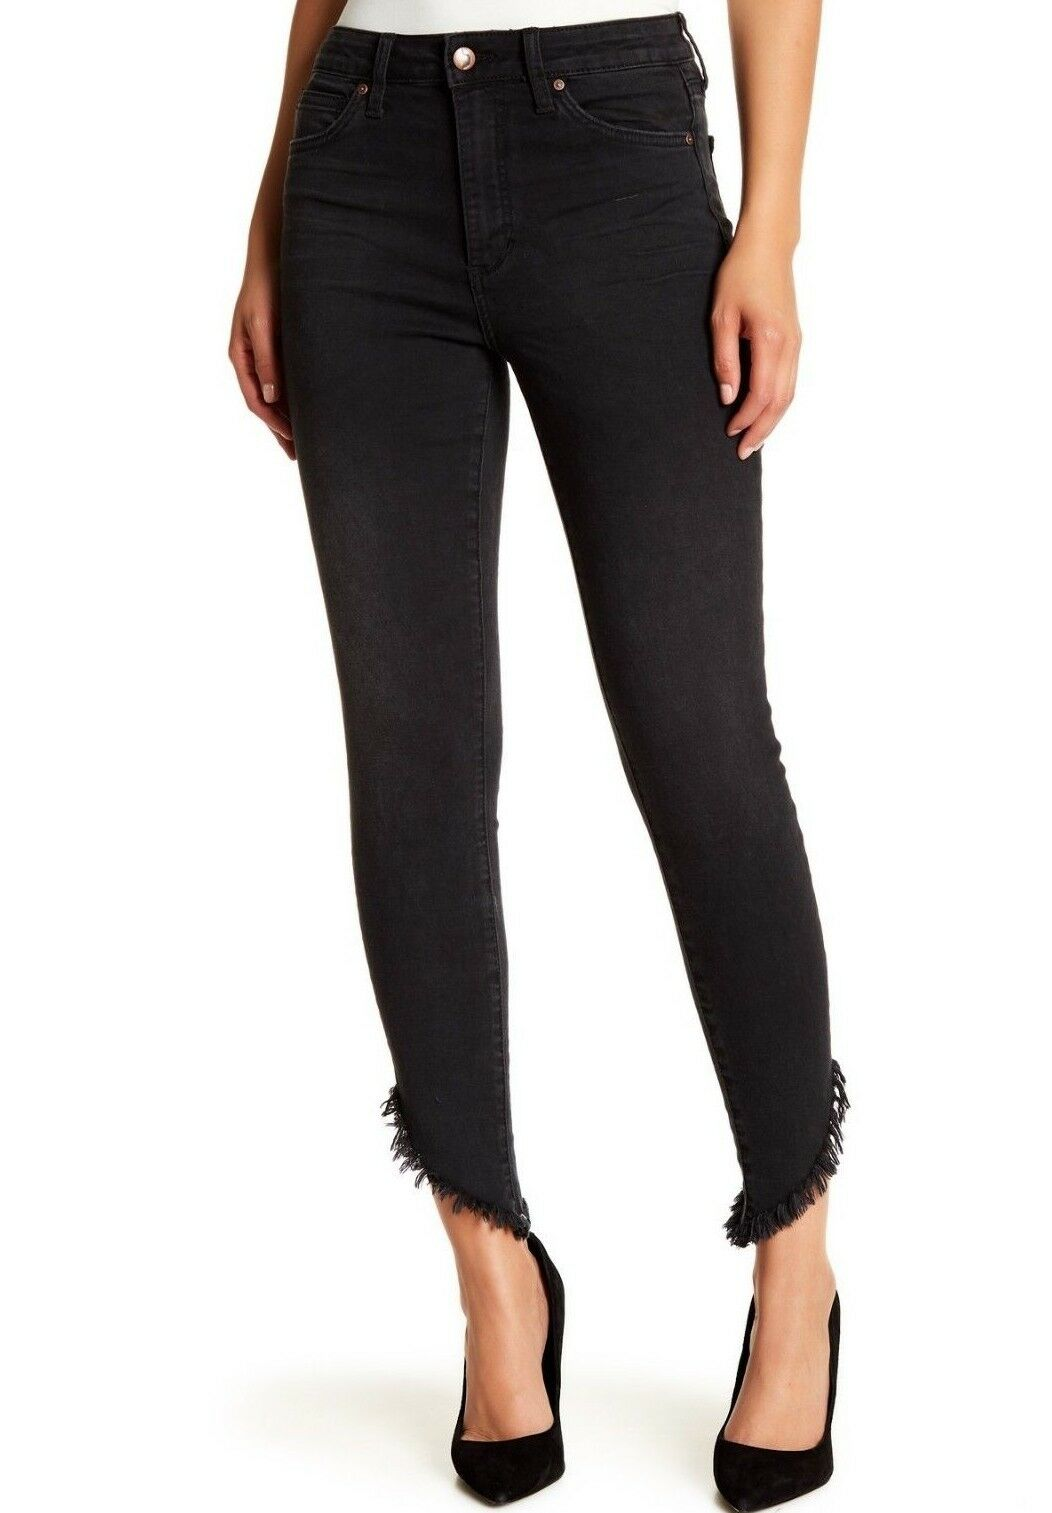 NWT JOE'S Sz29 THE SKINNY ANKLE HI-RISE RAW HEM STRETCH JEANS VERONICA BLAC